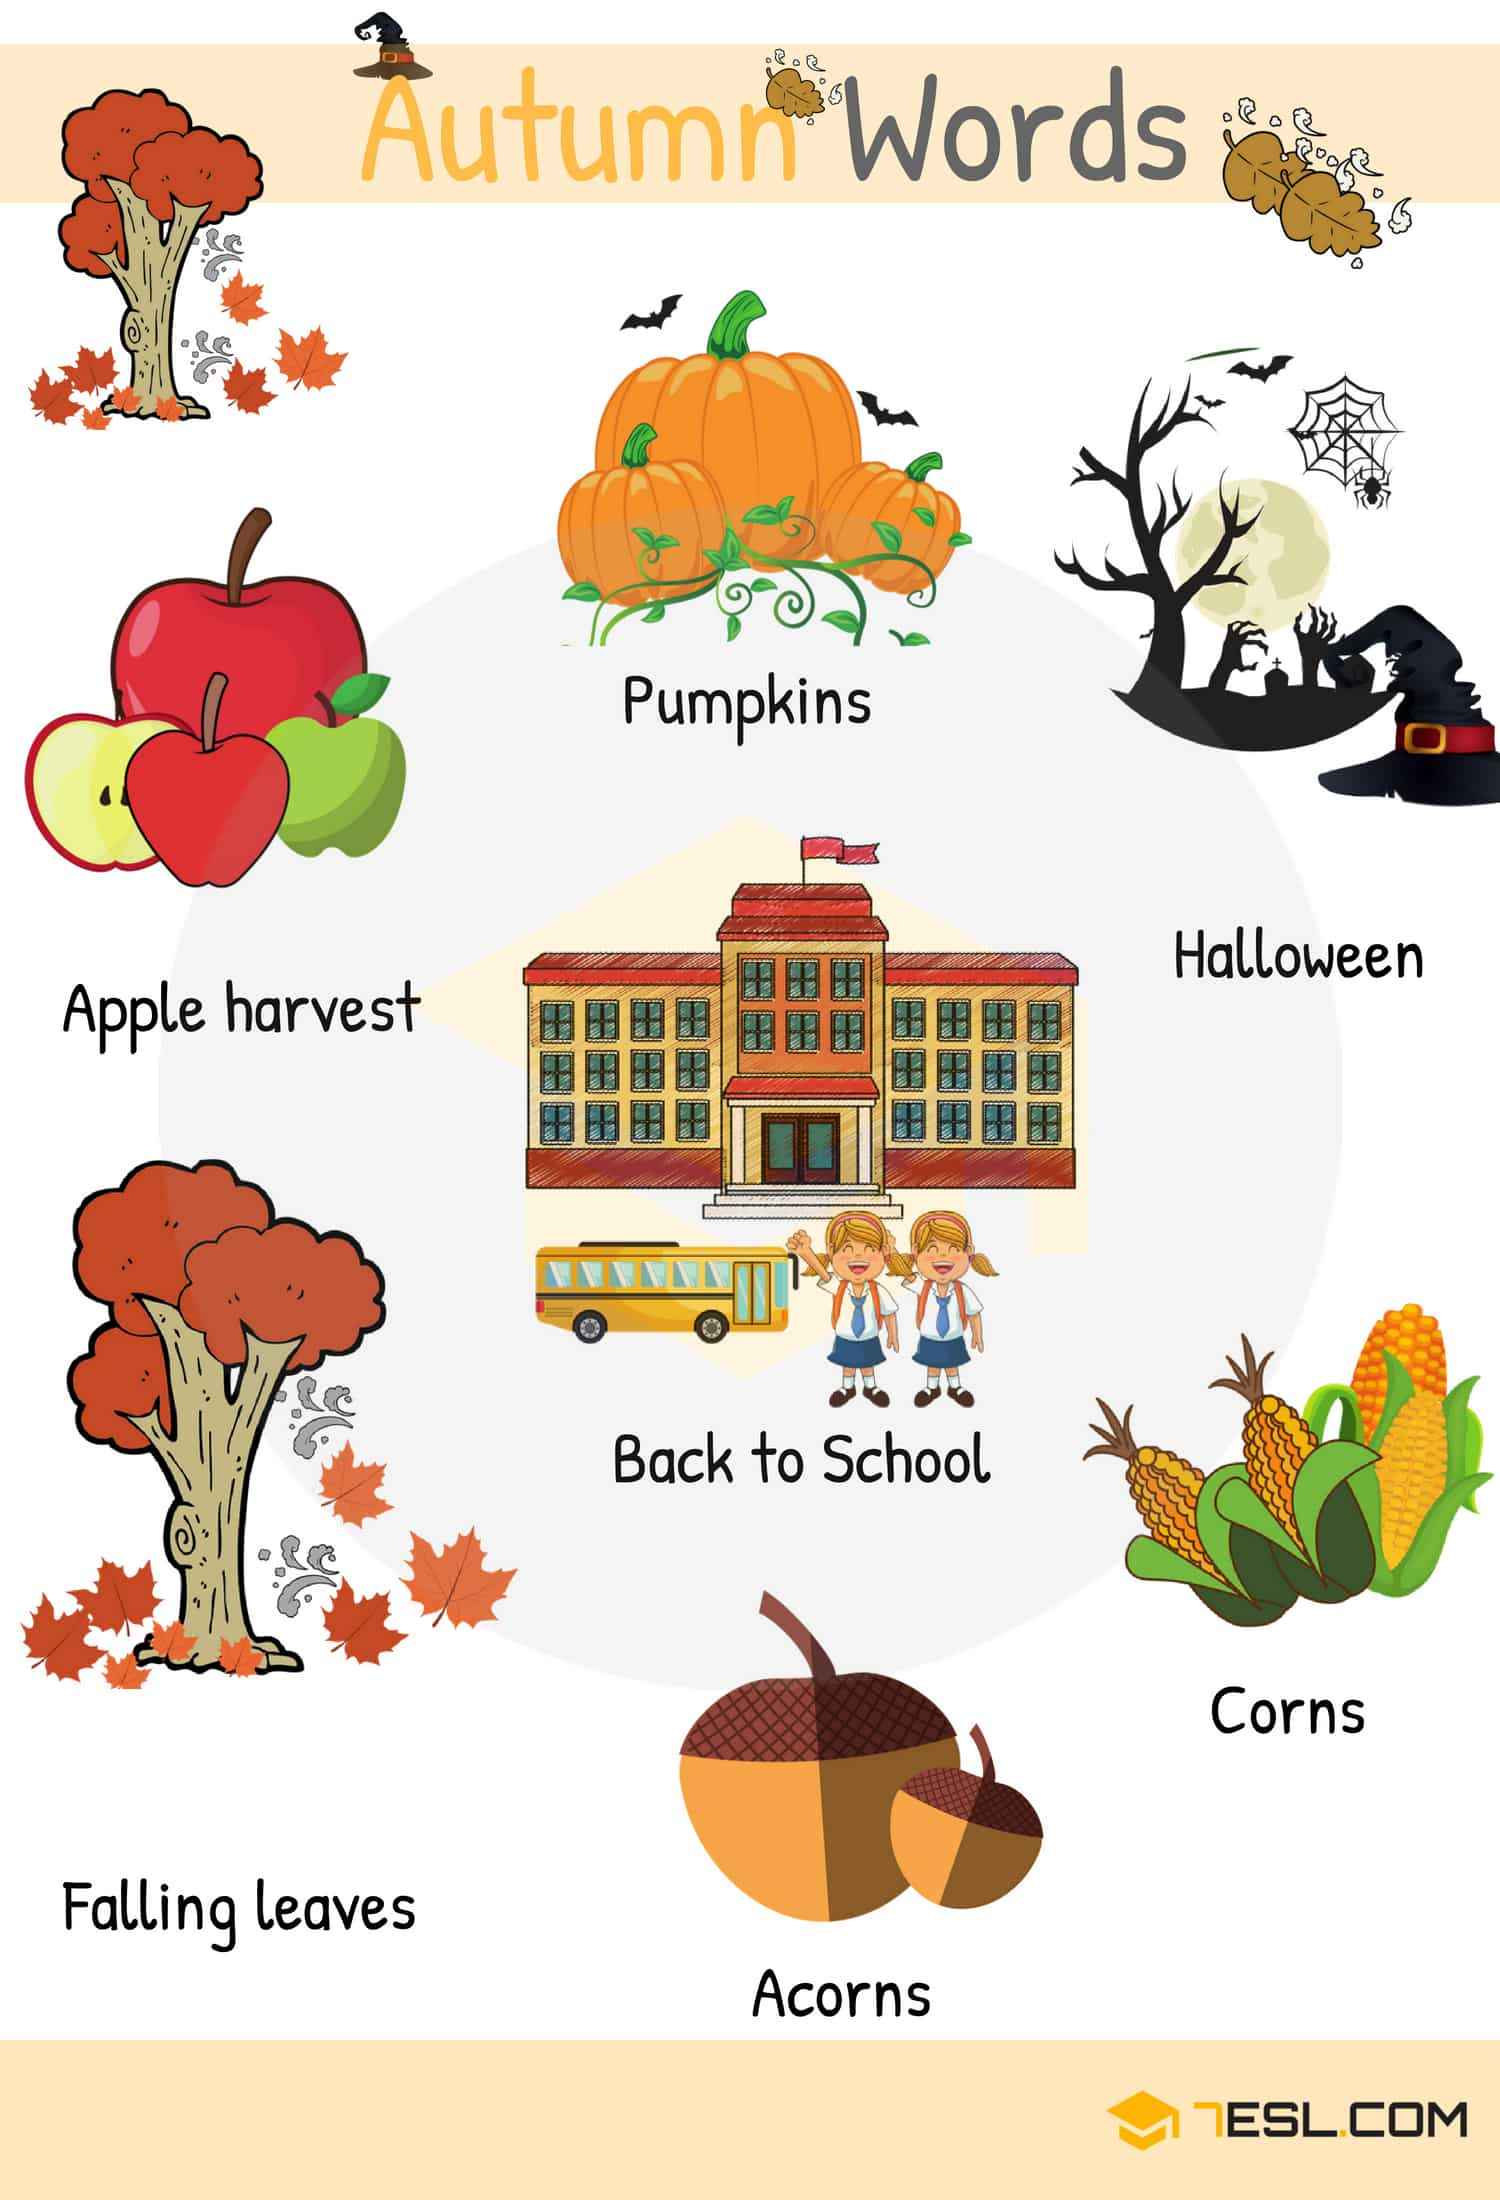 Autumn Words Useful Autumn Vocabulary With Pictures